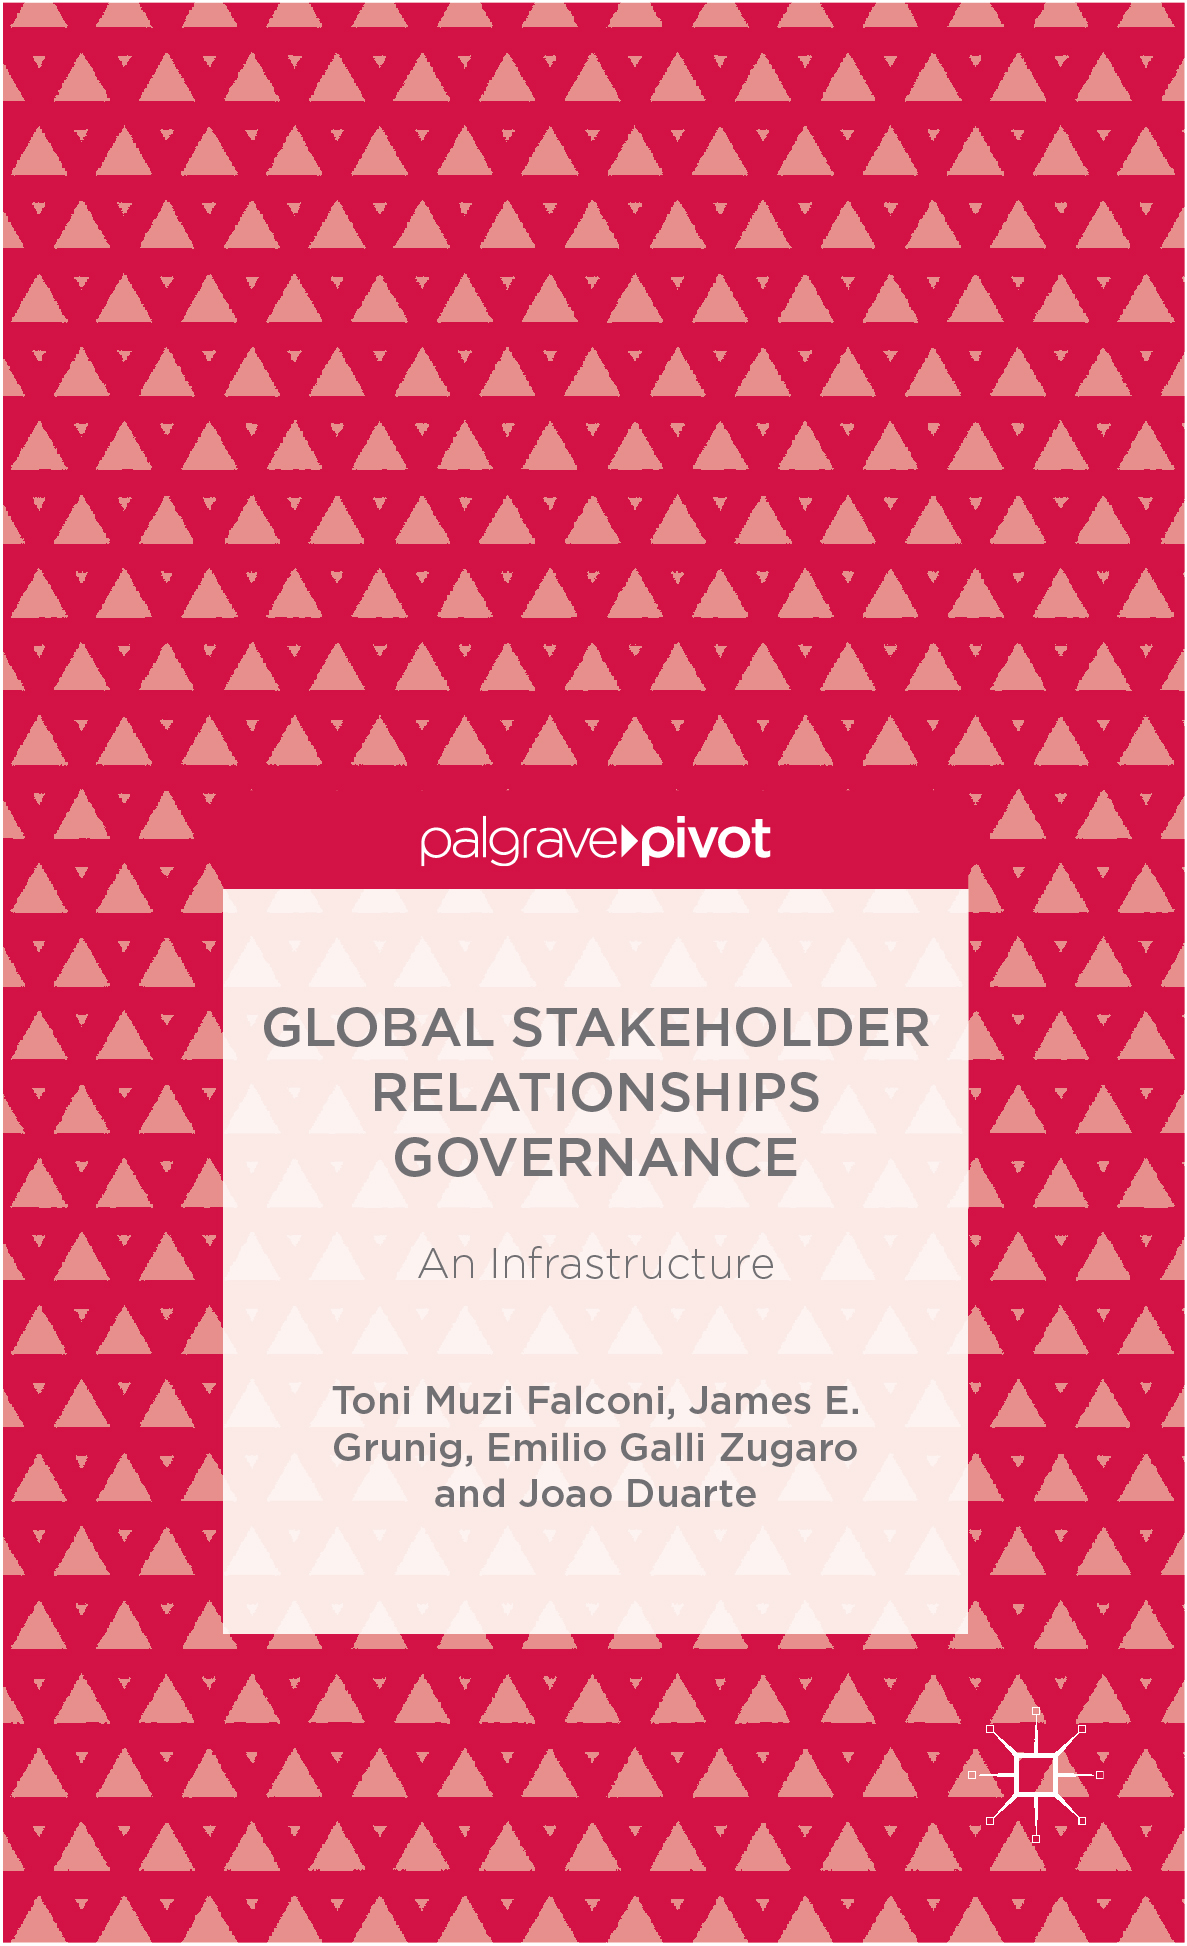 Download Ebook Global Stakeholder Relationships Governance by Toni Muzi Falconi Pdf